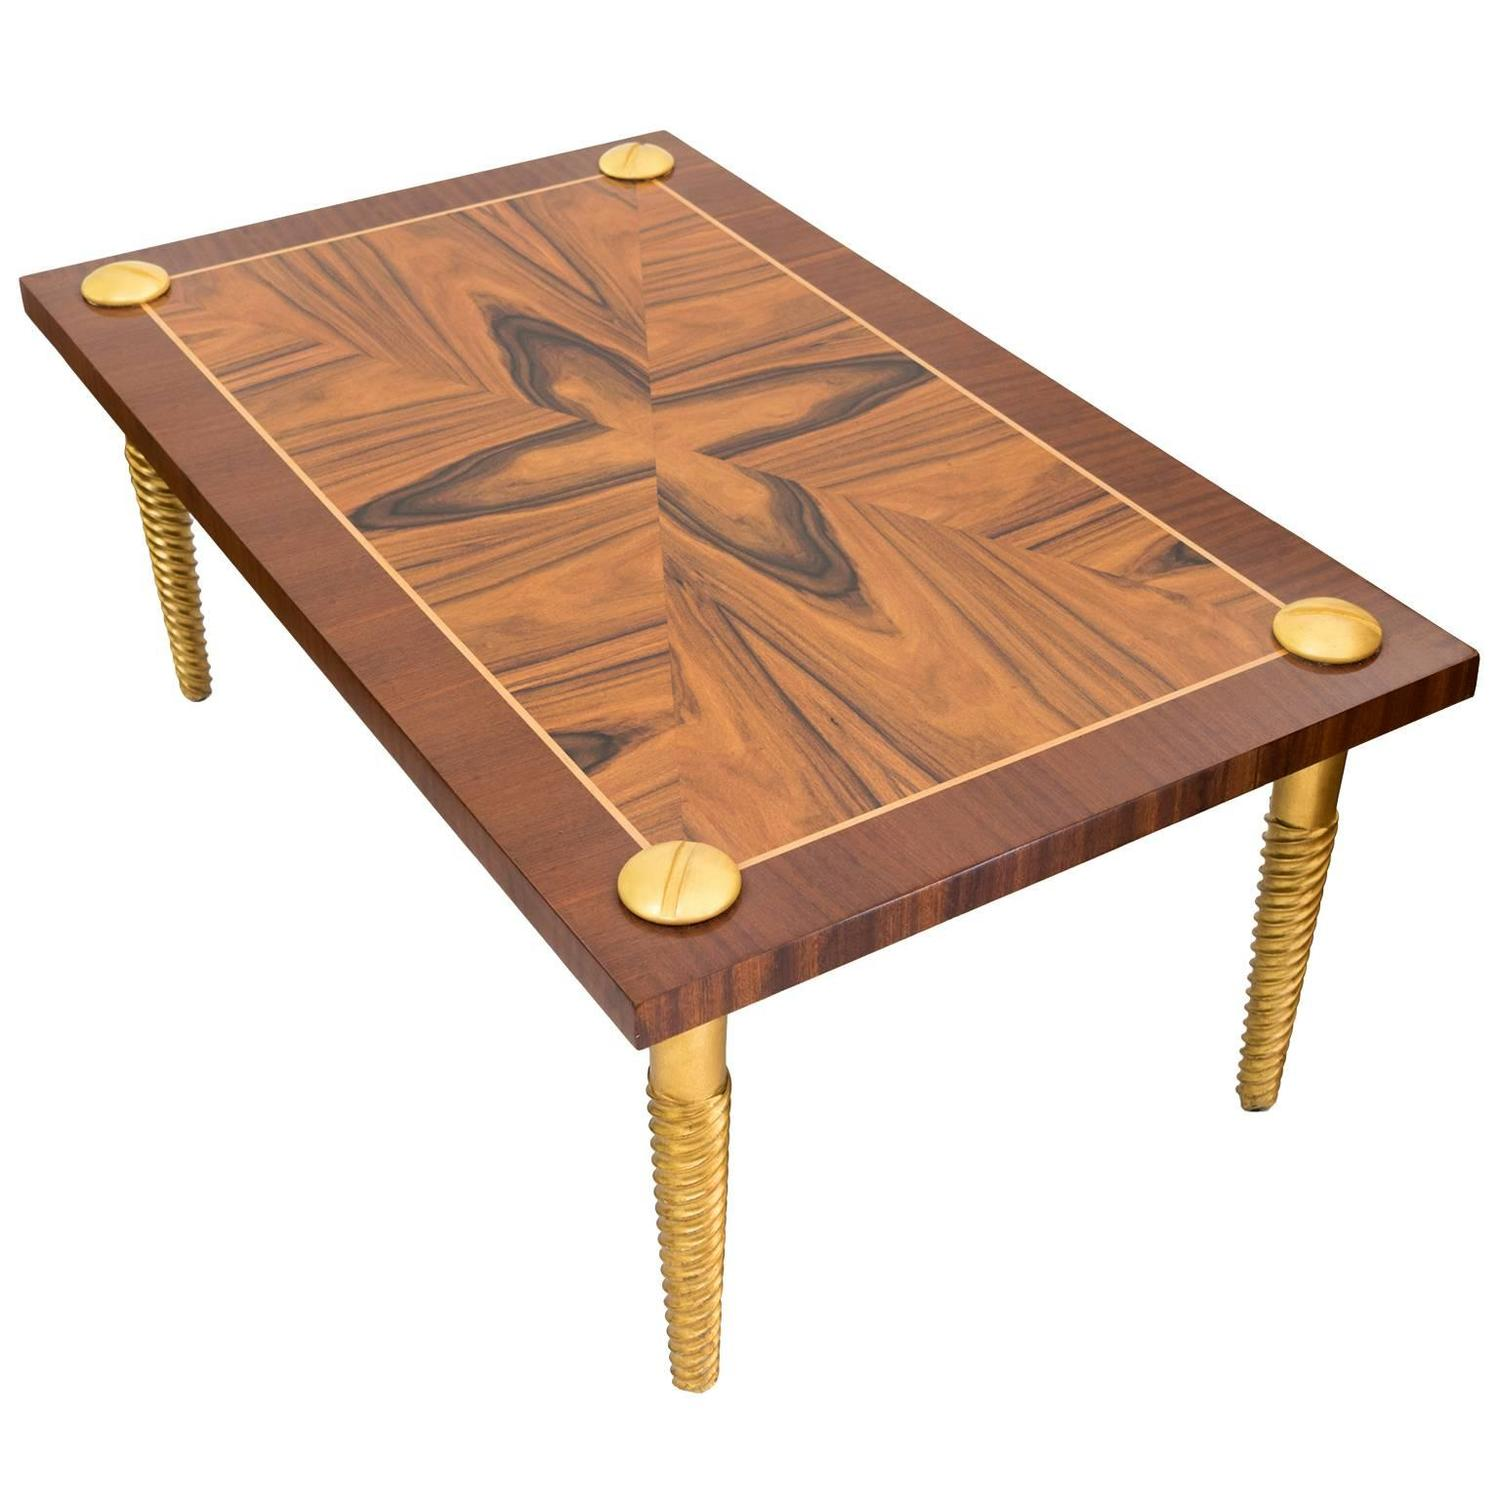 Italian Marquetry Coffee Table For Sale at 1stdibs